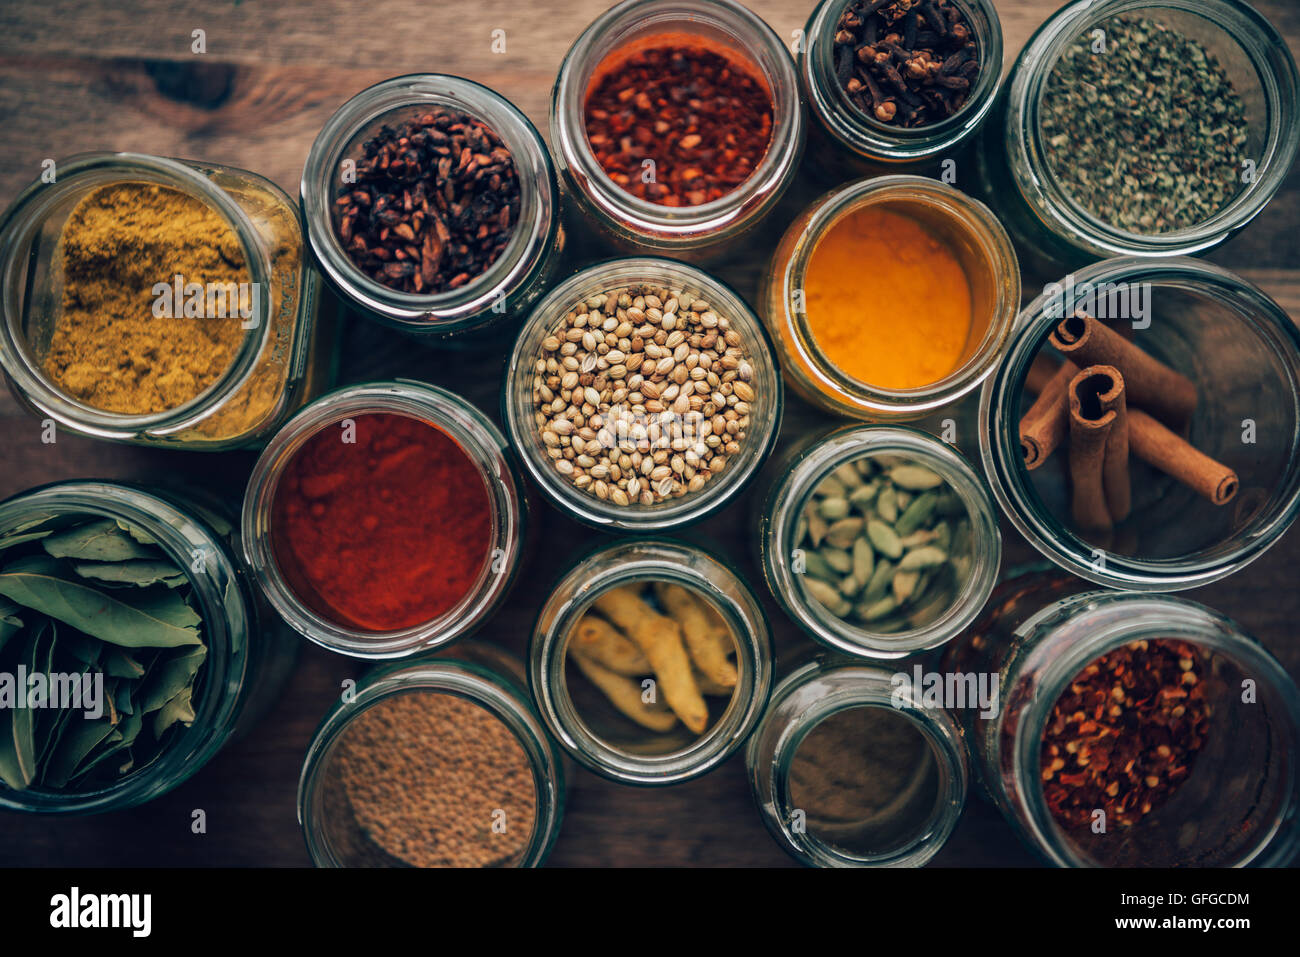 Assortment of colorful spices in glass jars. - Stock Image